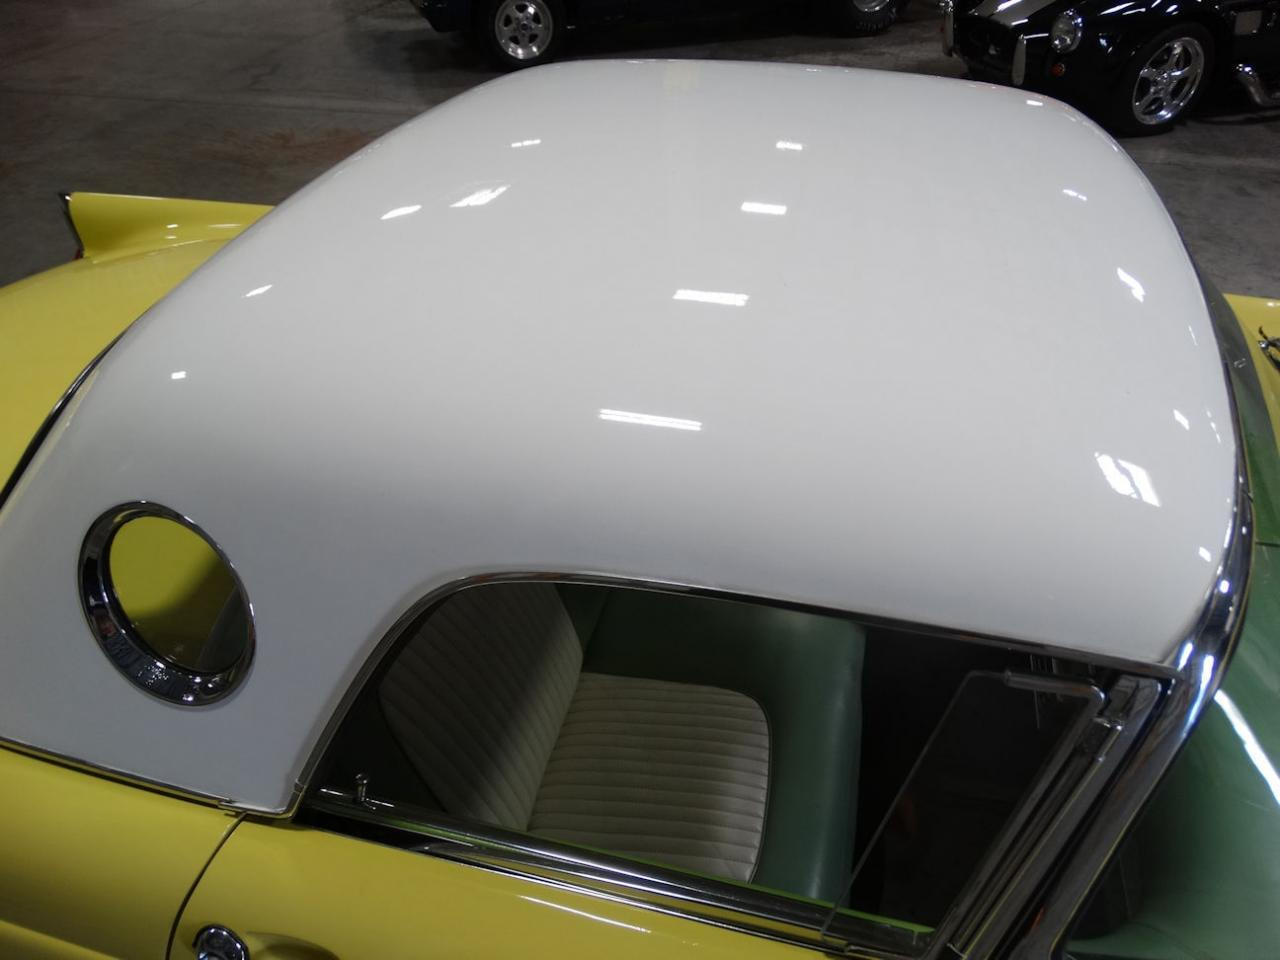 Large Picture of Classic '56 Ford Thunderbird located in Coral Springs Florida - $36,995.00 Offered by Gateway Classic Cars - Fort Lauderdale - L91T